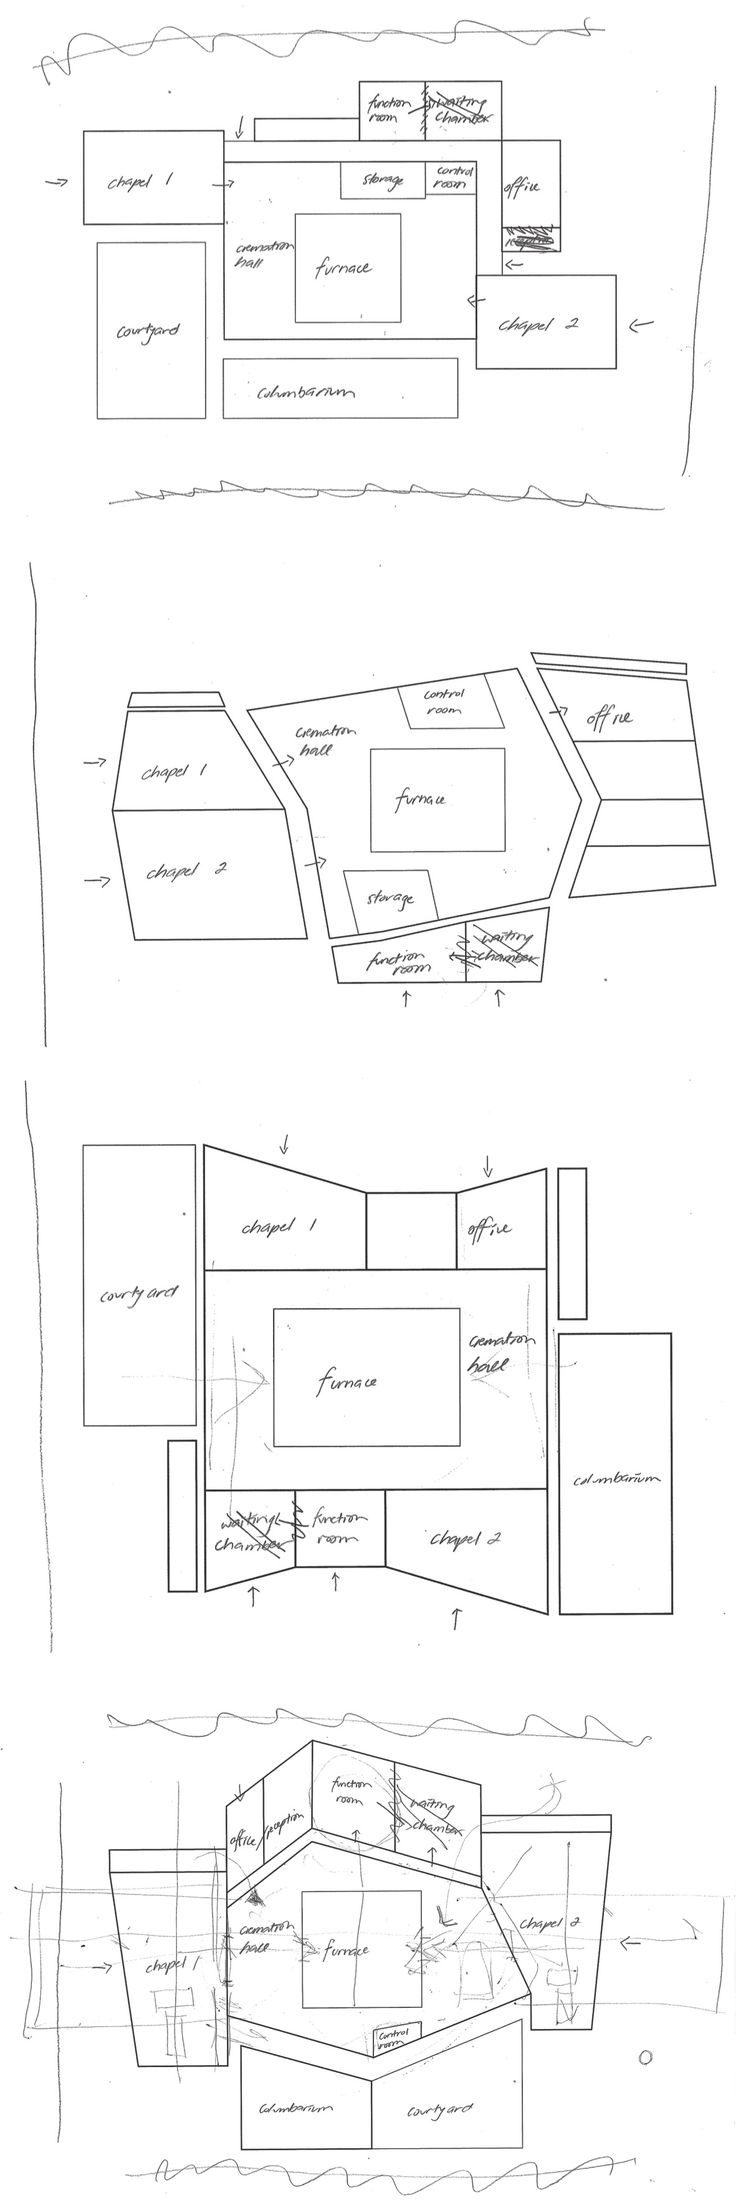 Week 7 - starting to design a plan while assigning spaces for program of crematorium